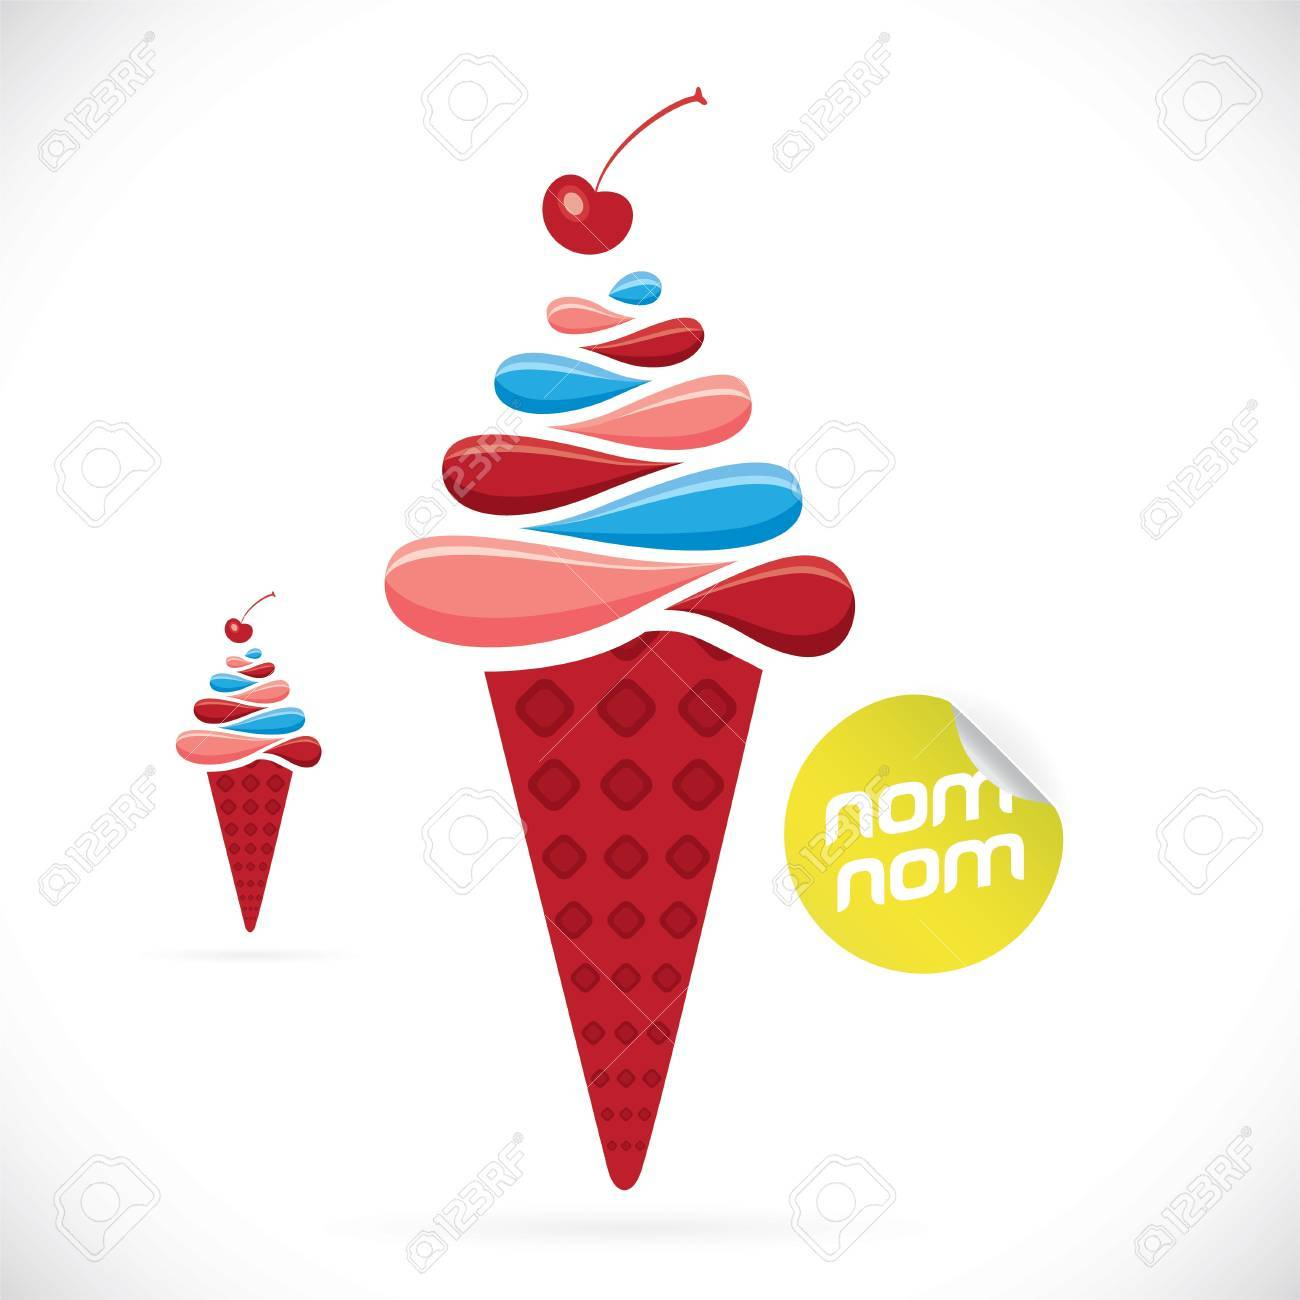 Ice Cream Illustration Royalty Free Cliparts, Vectors, And Stock ...